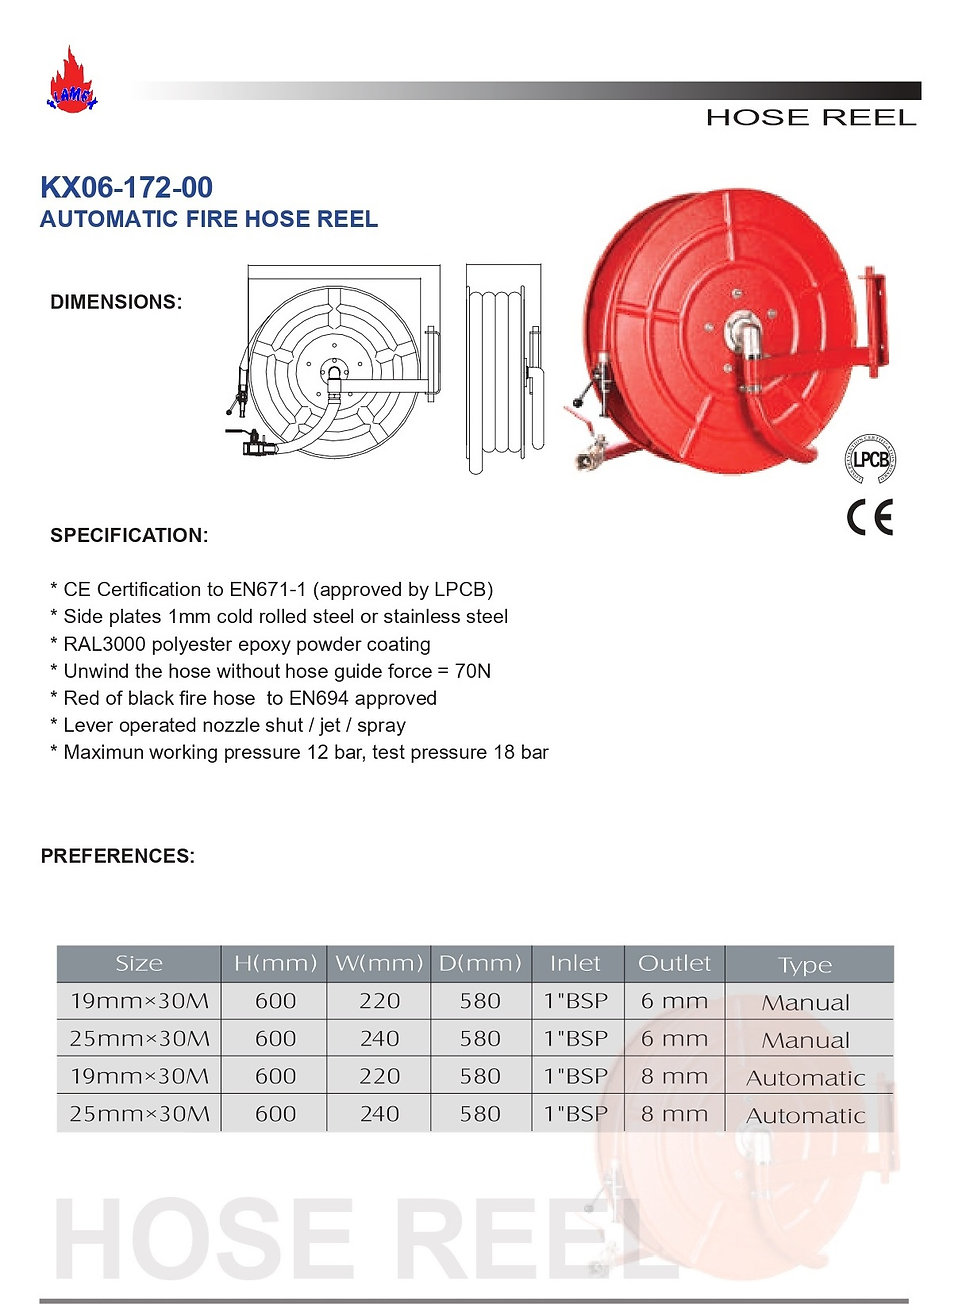 Hose Reel Catalog.jpg